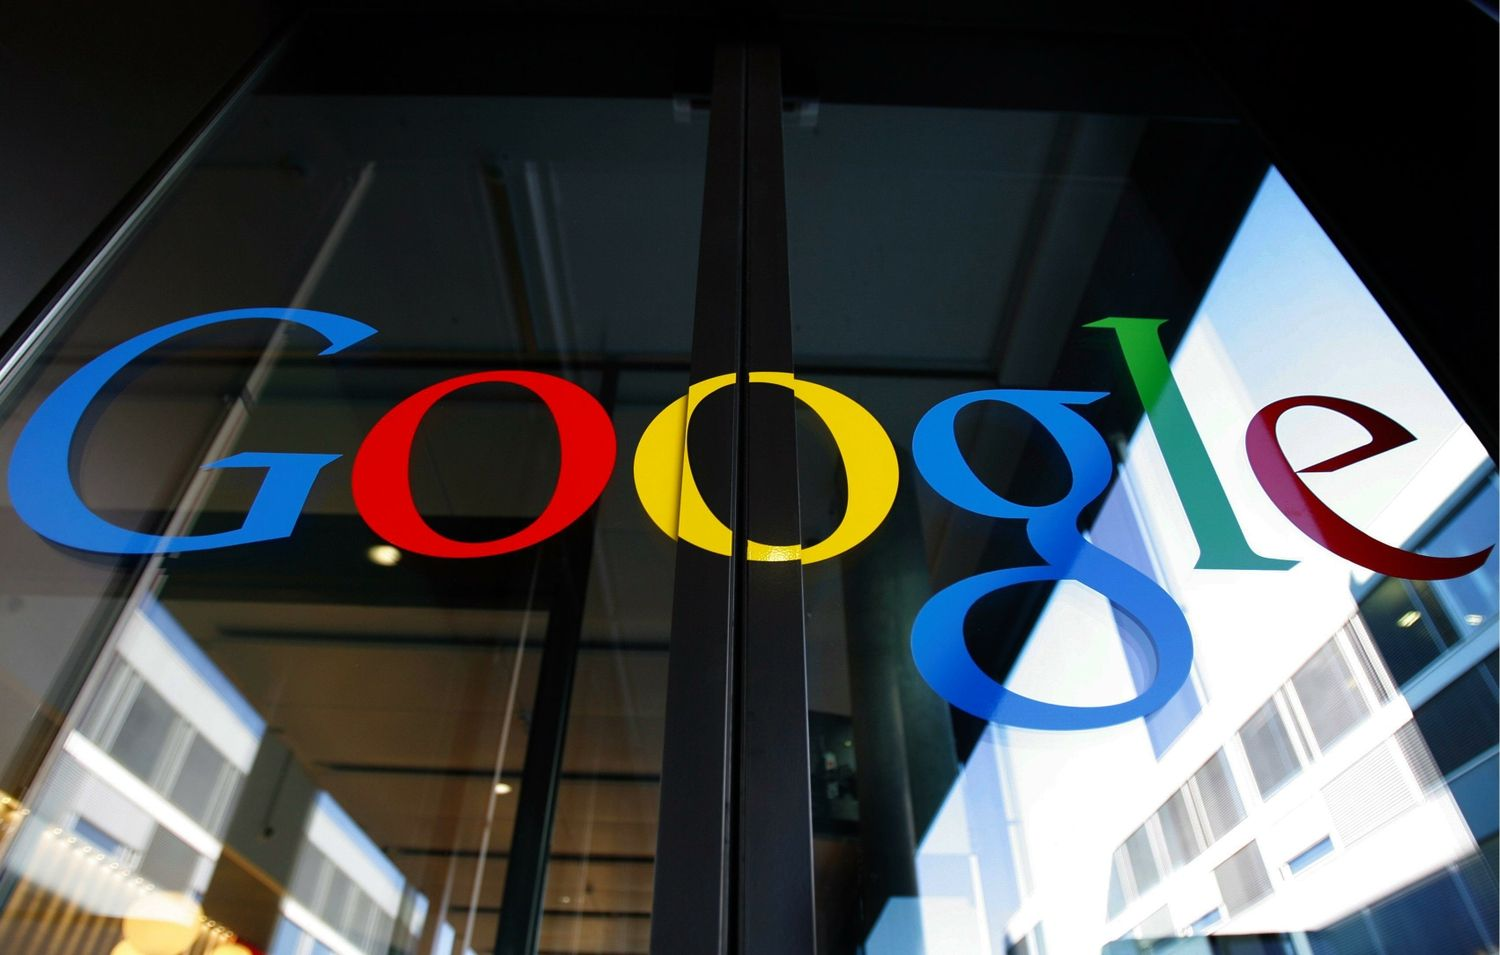 google inc Google inc ps when opening the package, please do open it on the floor, for safety purposes oh, and a letter from google inc to the fcc certifying the wireless hardware is within specifications.